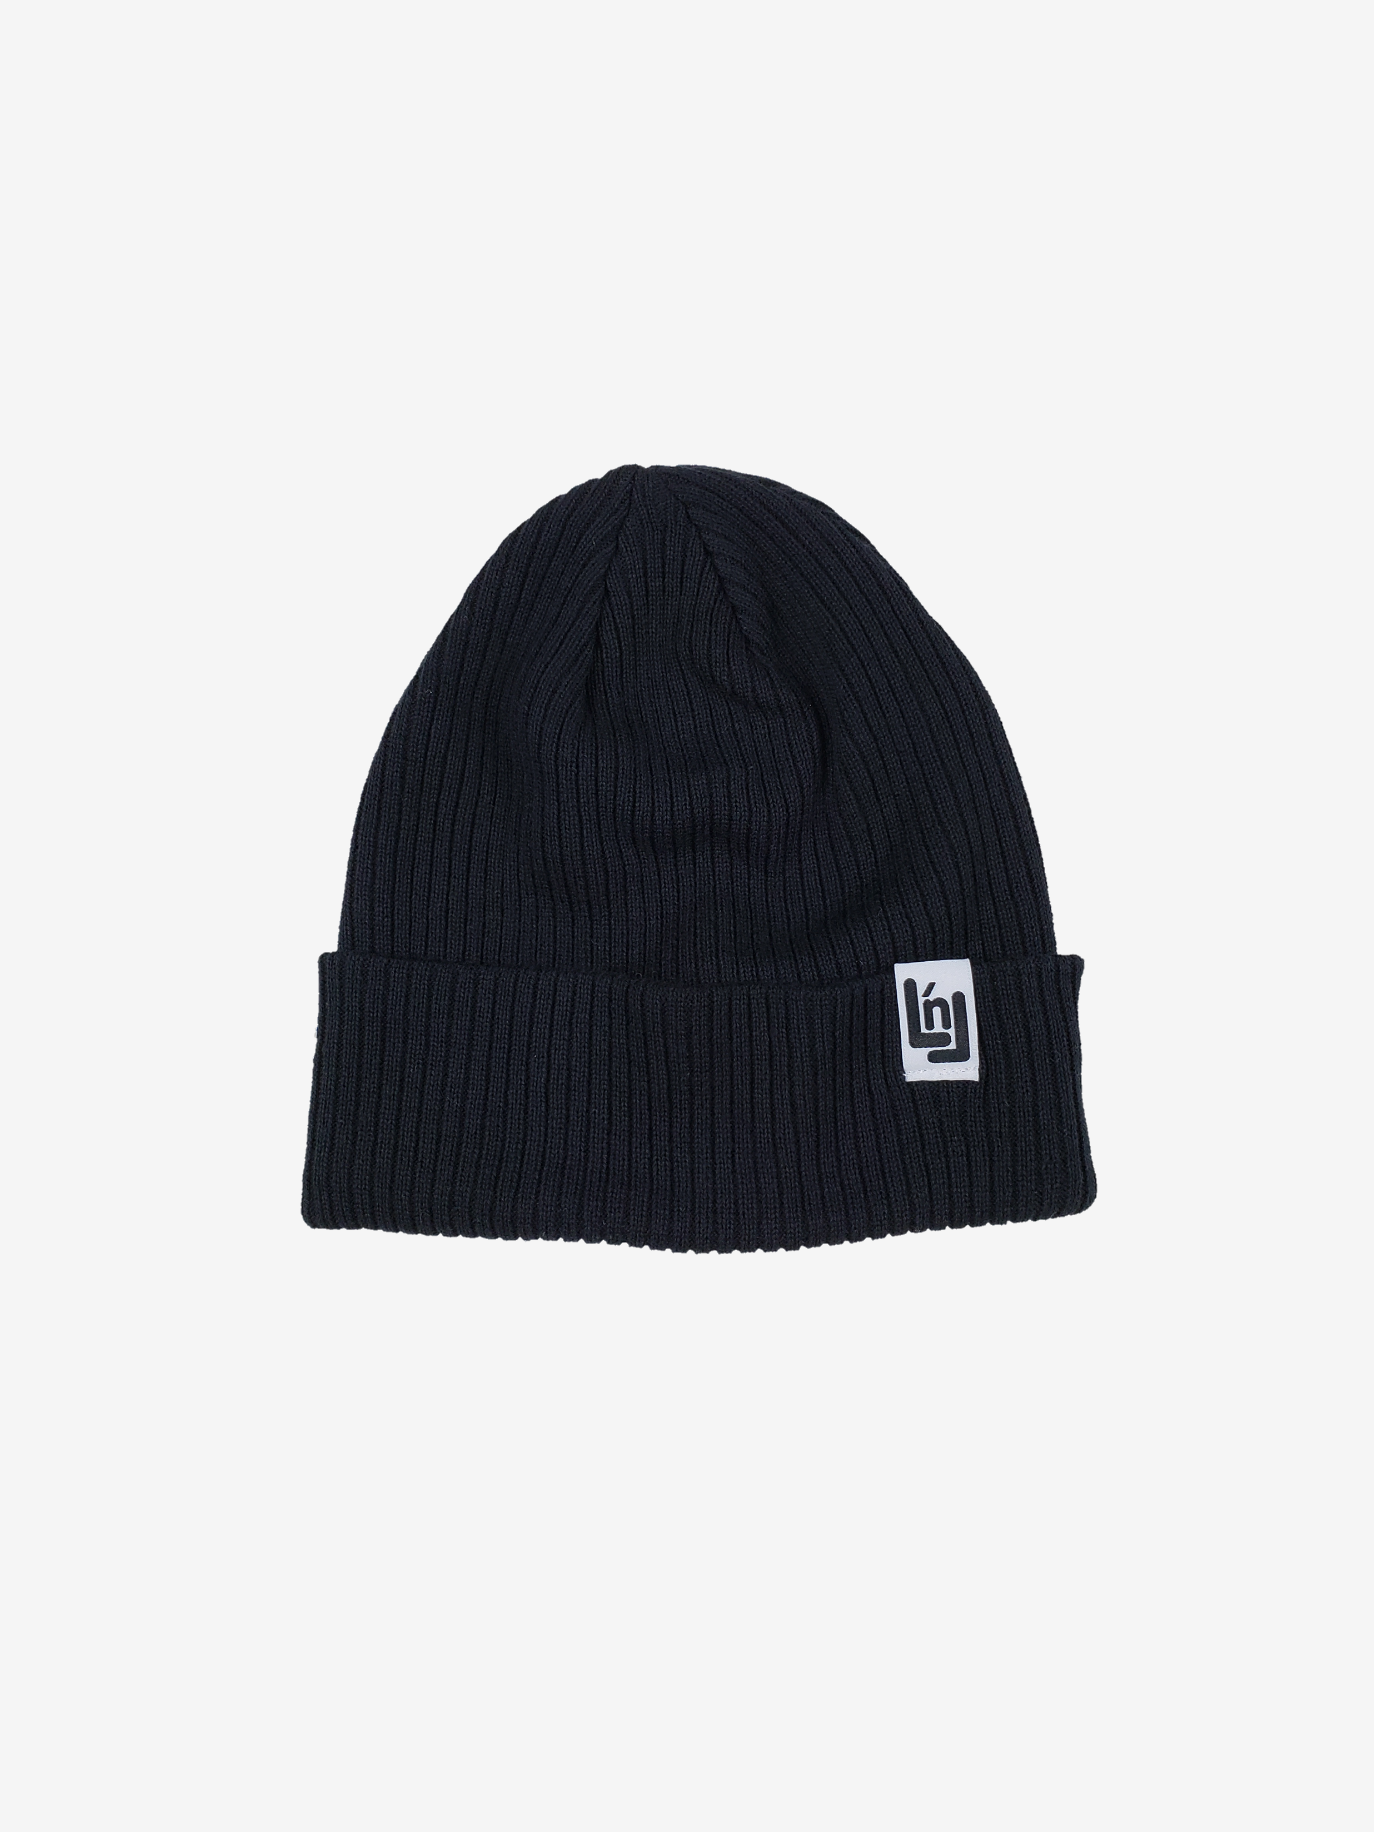 Cotton Knit Beanie (Black)